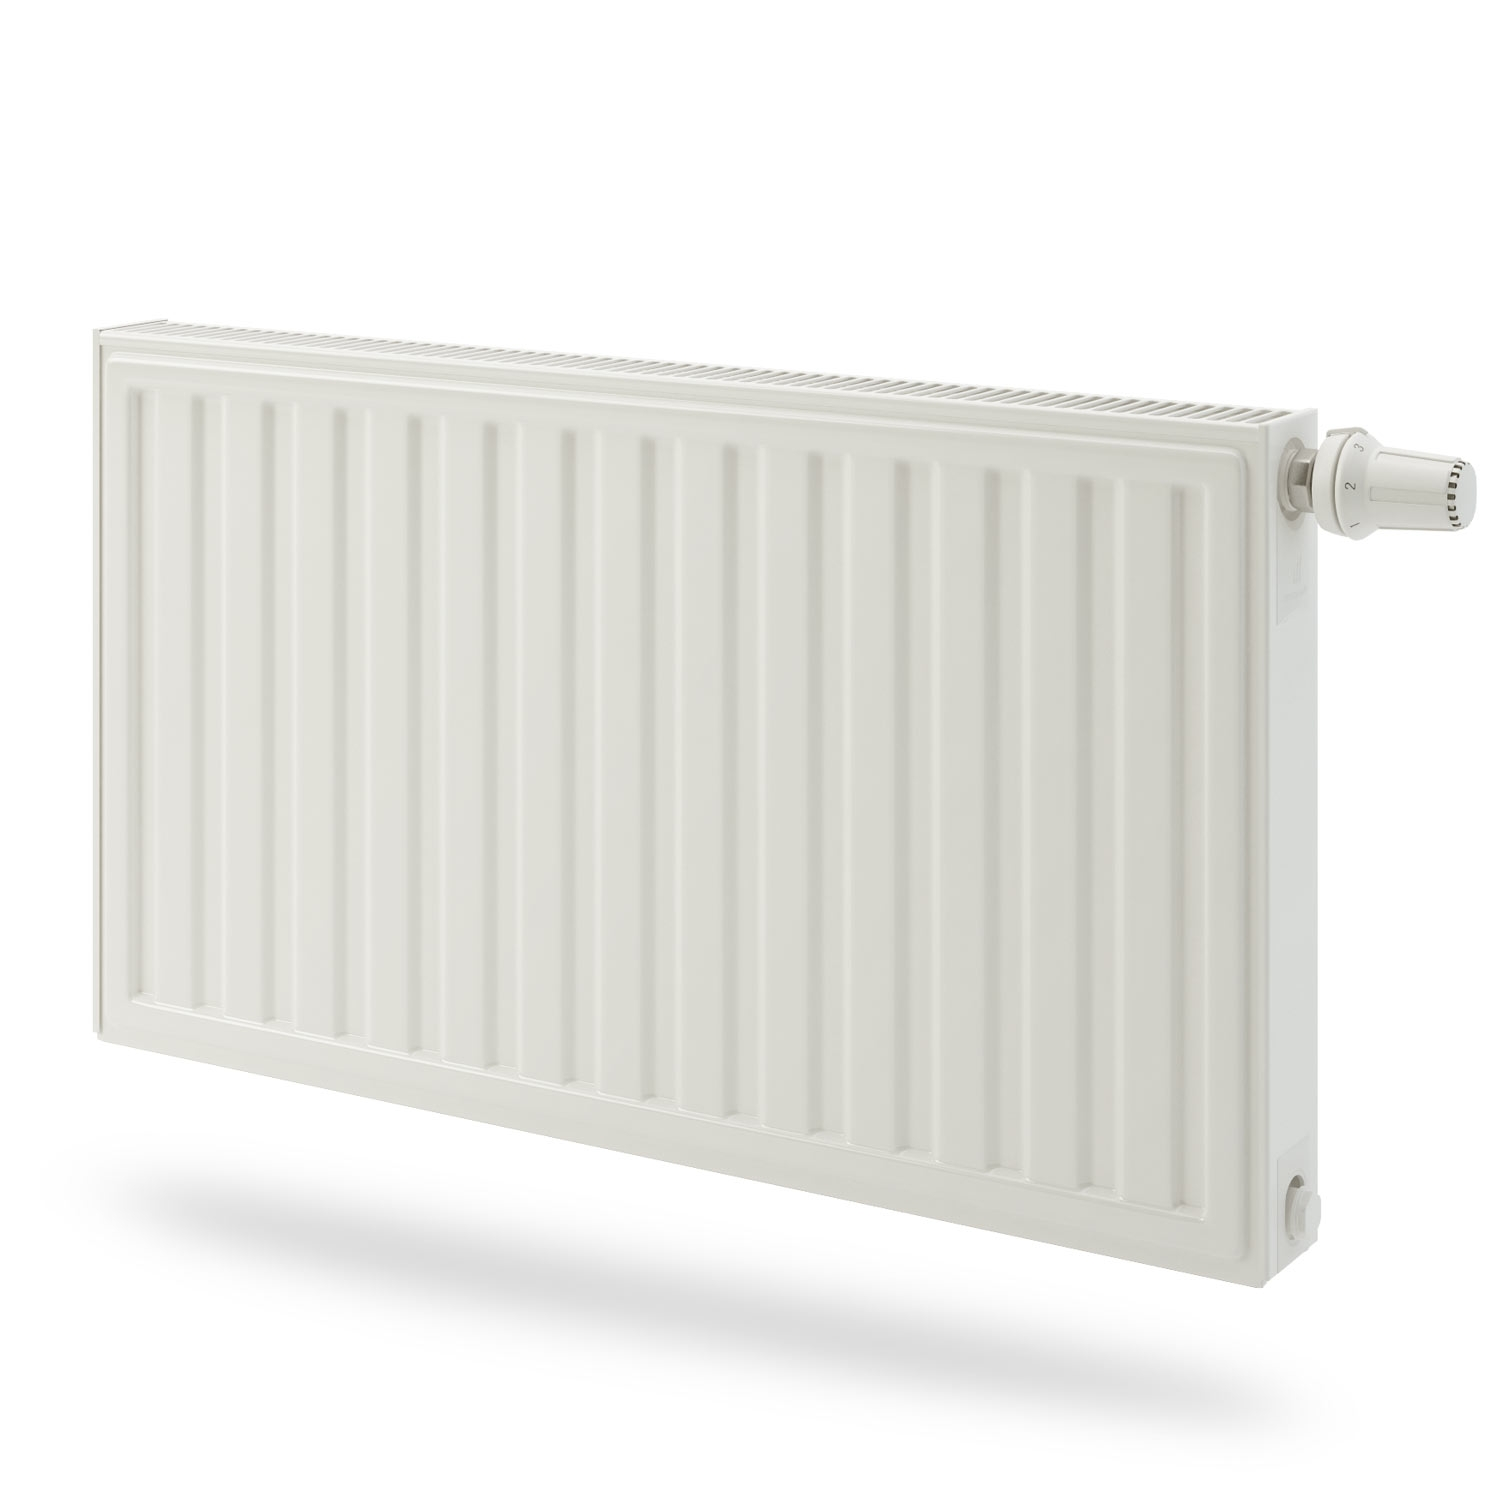 Radson E.Flow Integra paneelradiator  400x1800x69mm (H x L x D) - type 21s